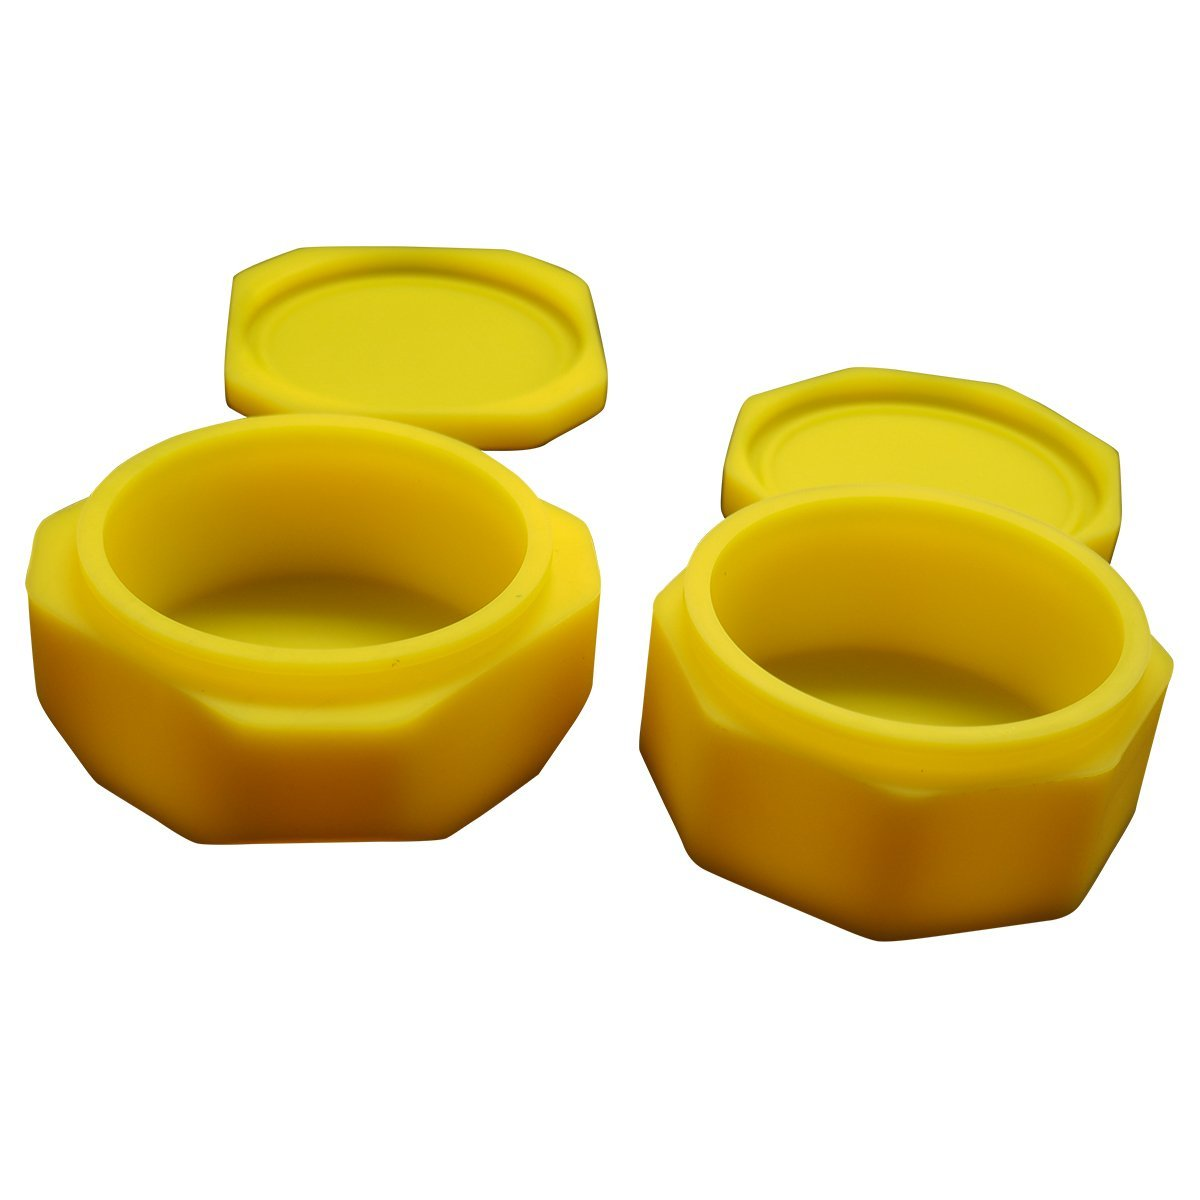 Gentcy Large Silicone Container Jars Oil Multi Compartment Concentrate Large Wax Yellow 2PCS